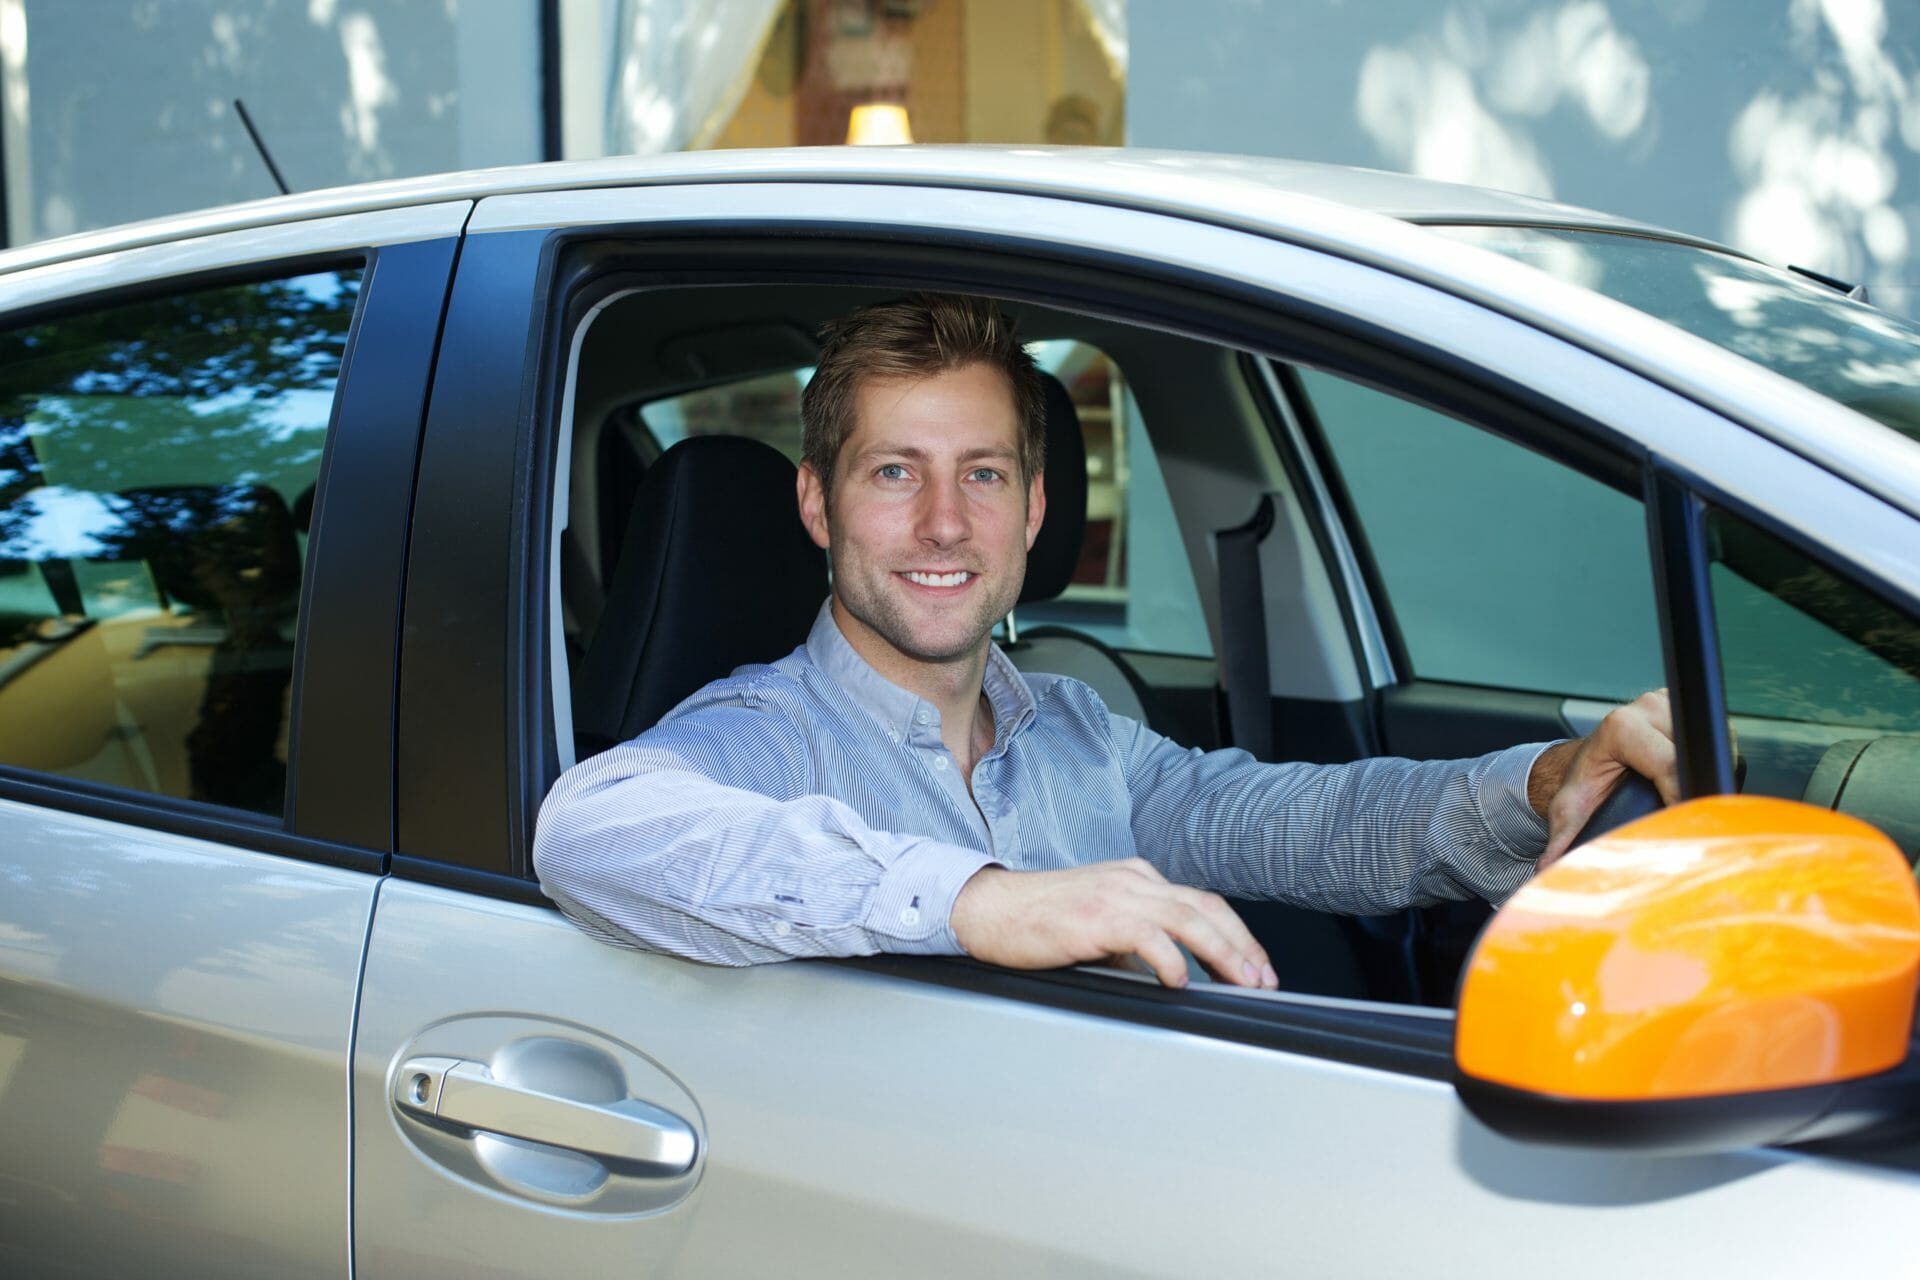 A well dressed man in the front of a GoGet car with the orange wing mirror visible - is it illegal to drive without a side mirror